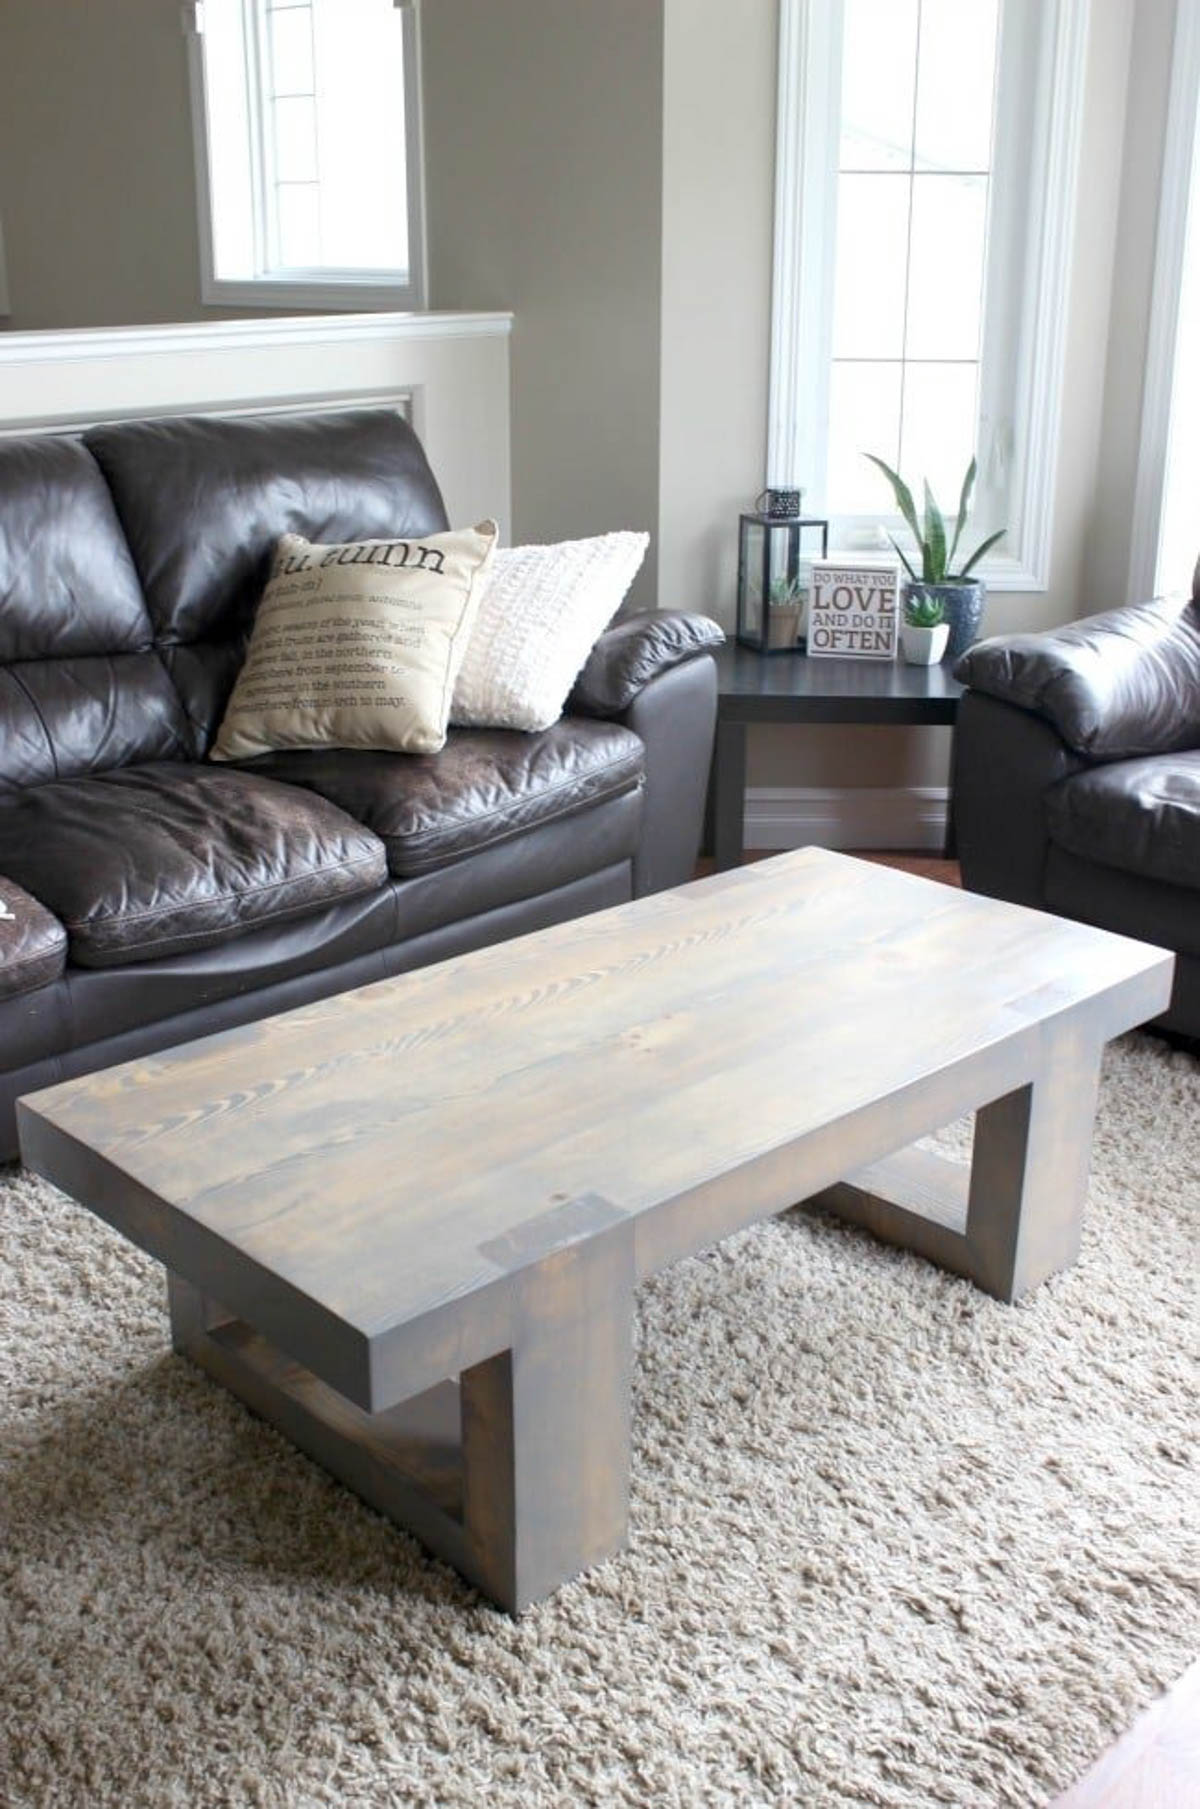 Modern coffee table placed in front of a leather sofa